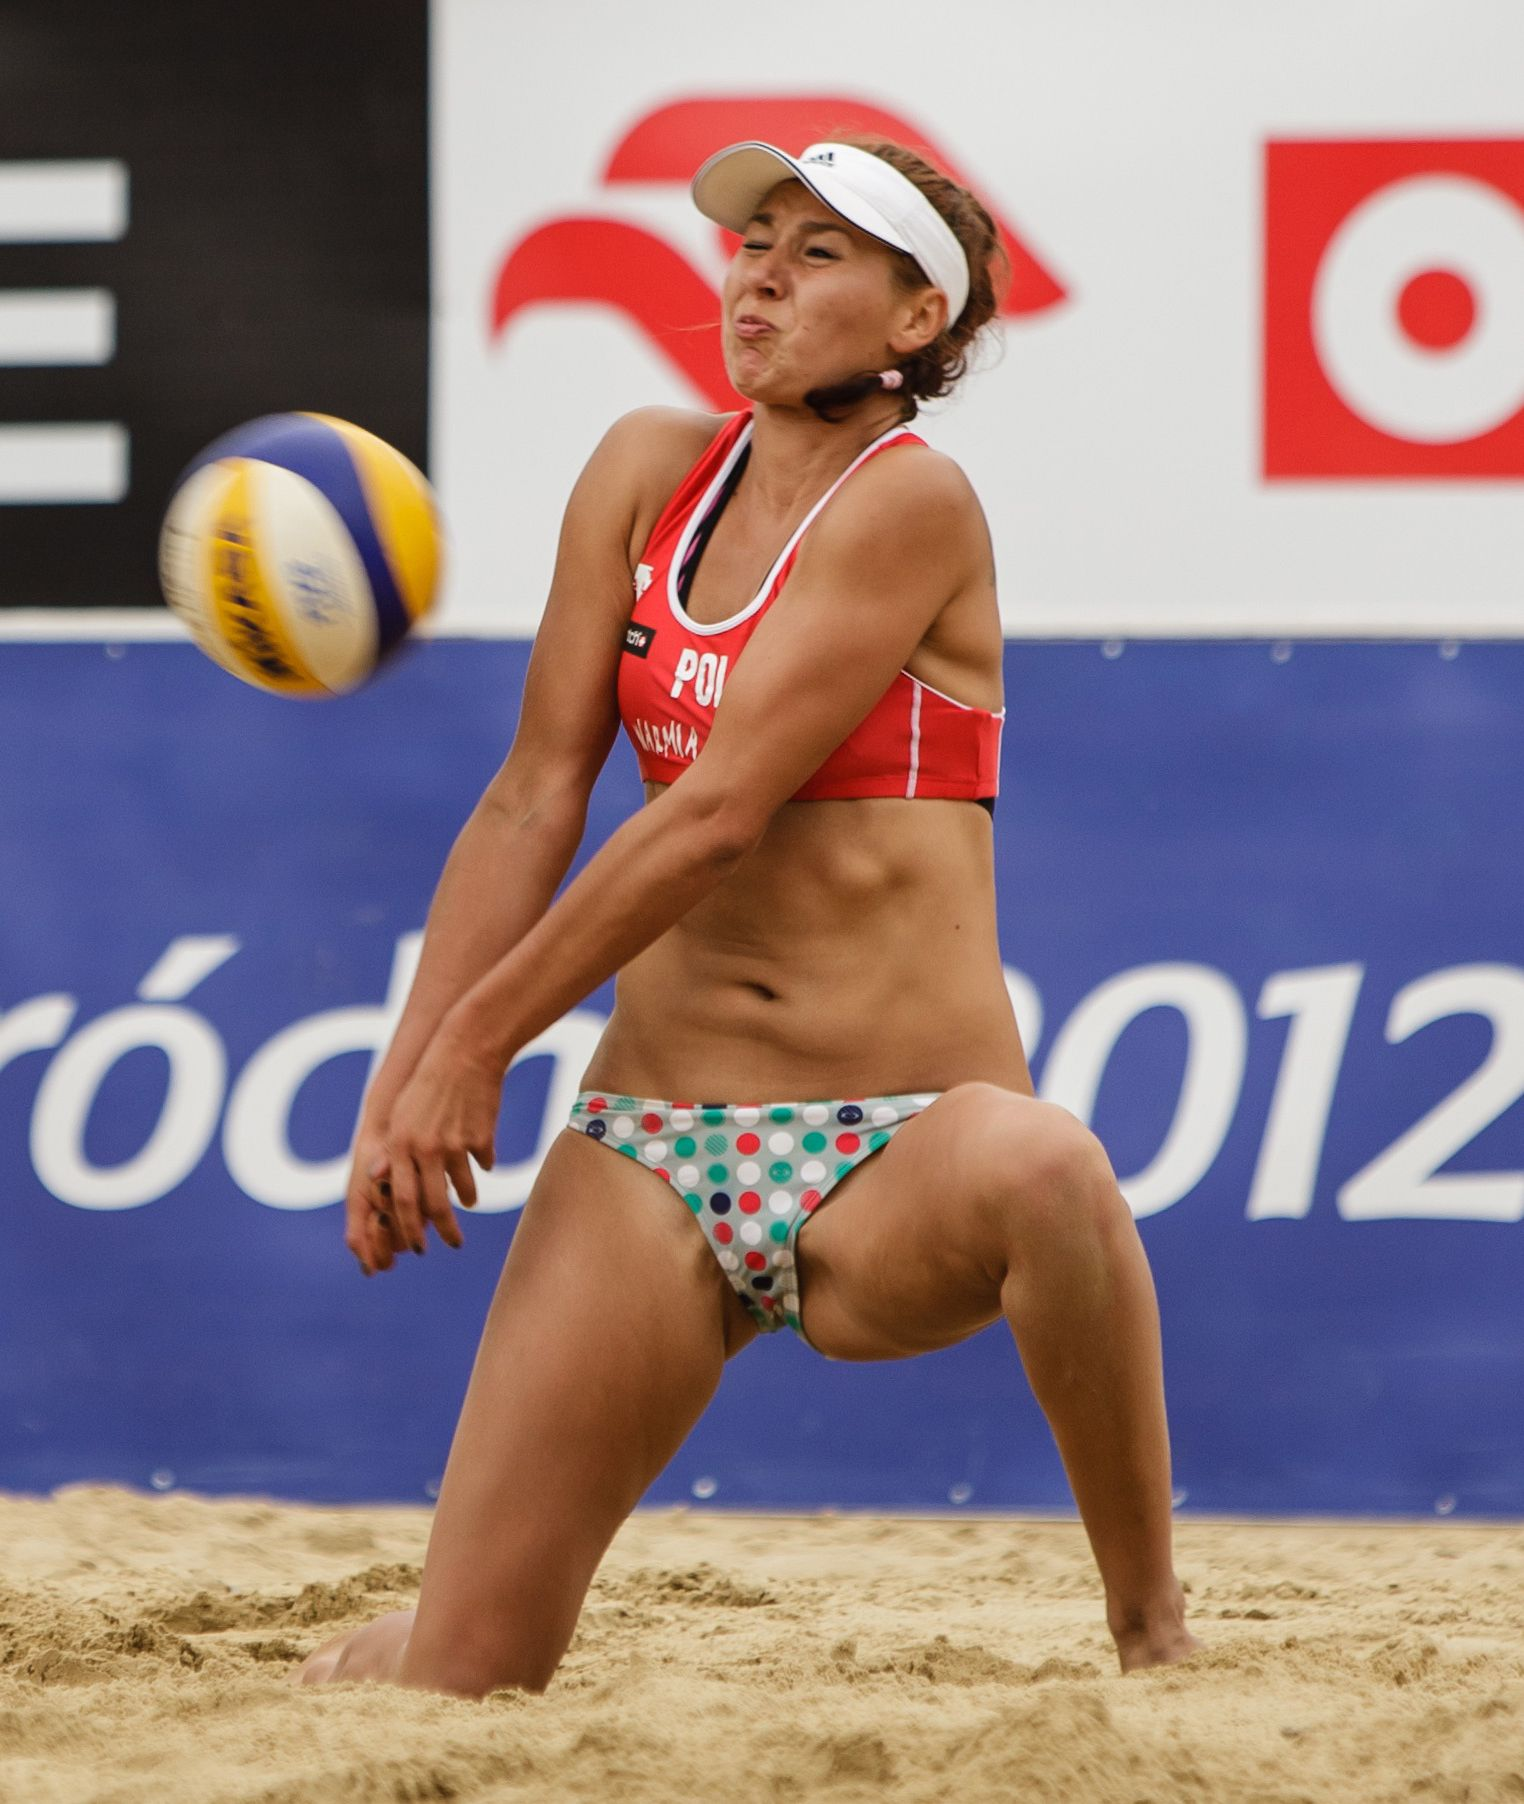 Pin By Ian Cortez On Beach Volleyball In 2020 Women Volleyball Beach Volleyball Gymnastics Girls